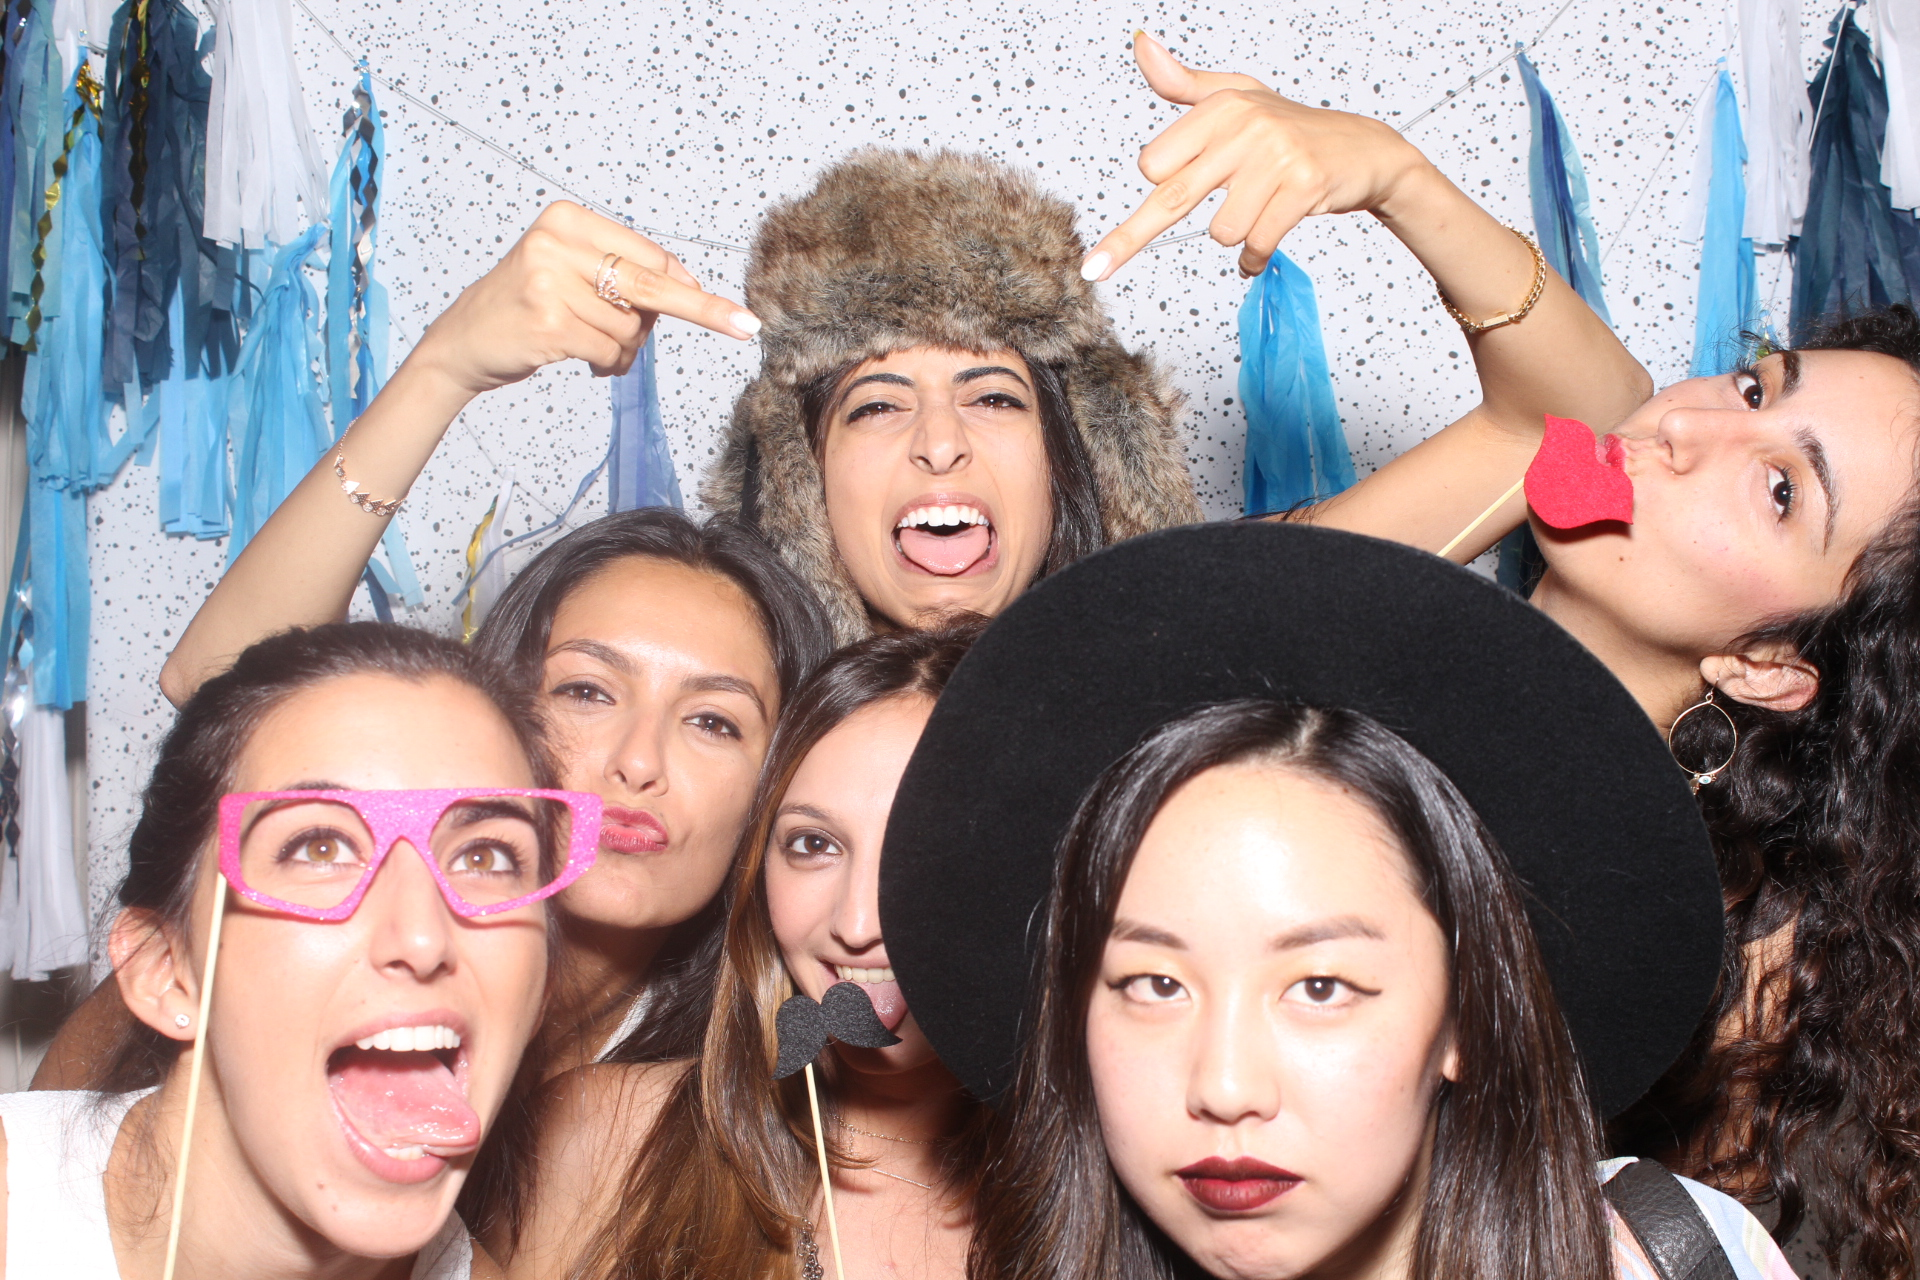 Luxury Photo Booths Los Angeles - Beverly Hills Photo Booth Rentals